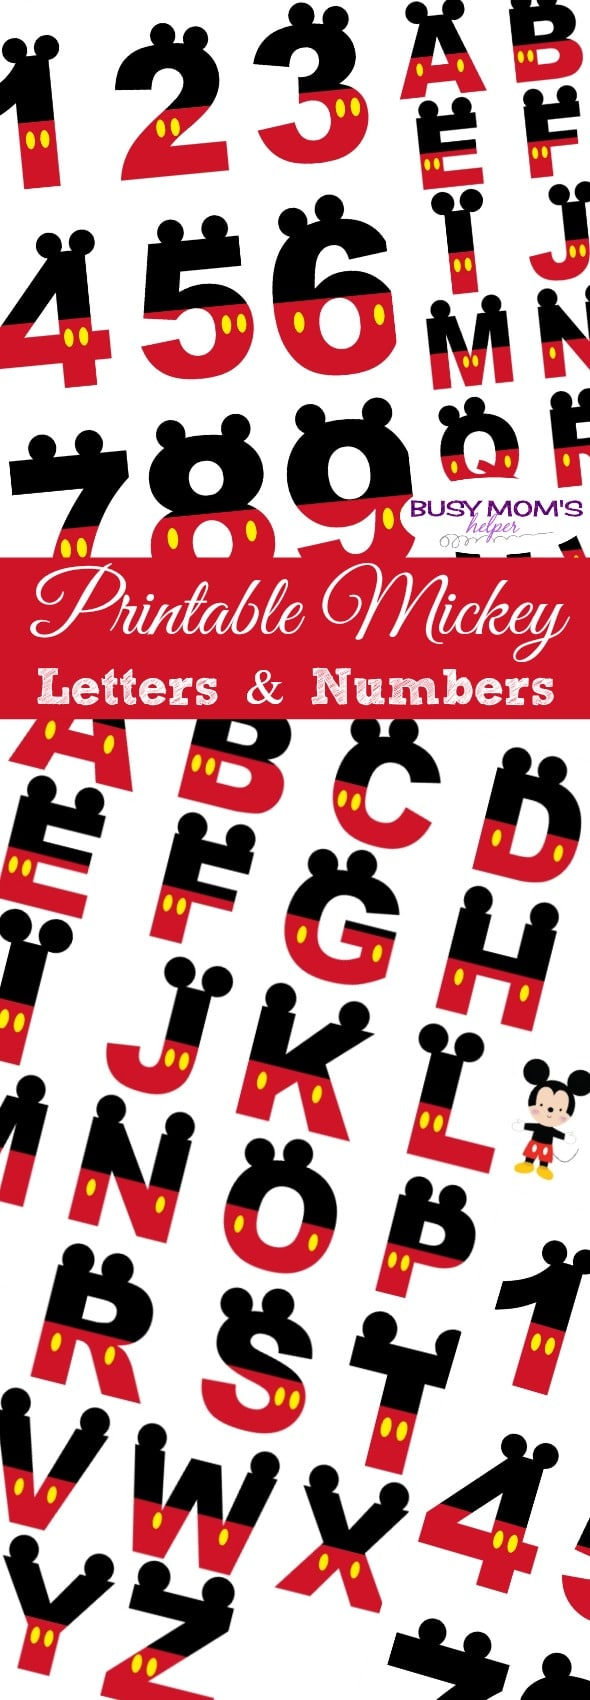 picture regarding Disney Letters Printable identified as Printable Mickey Figures Letters - Active Mothers Helper